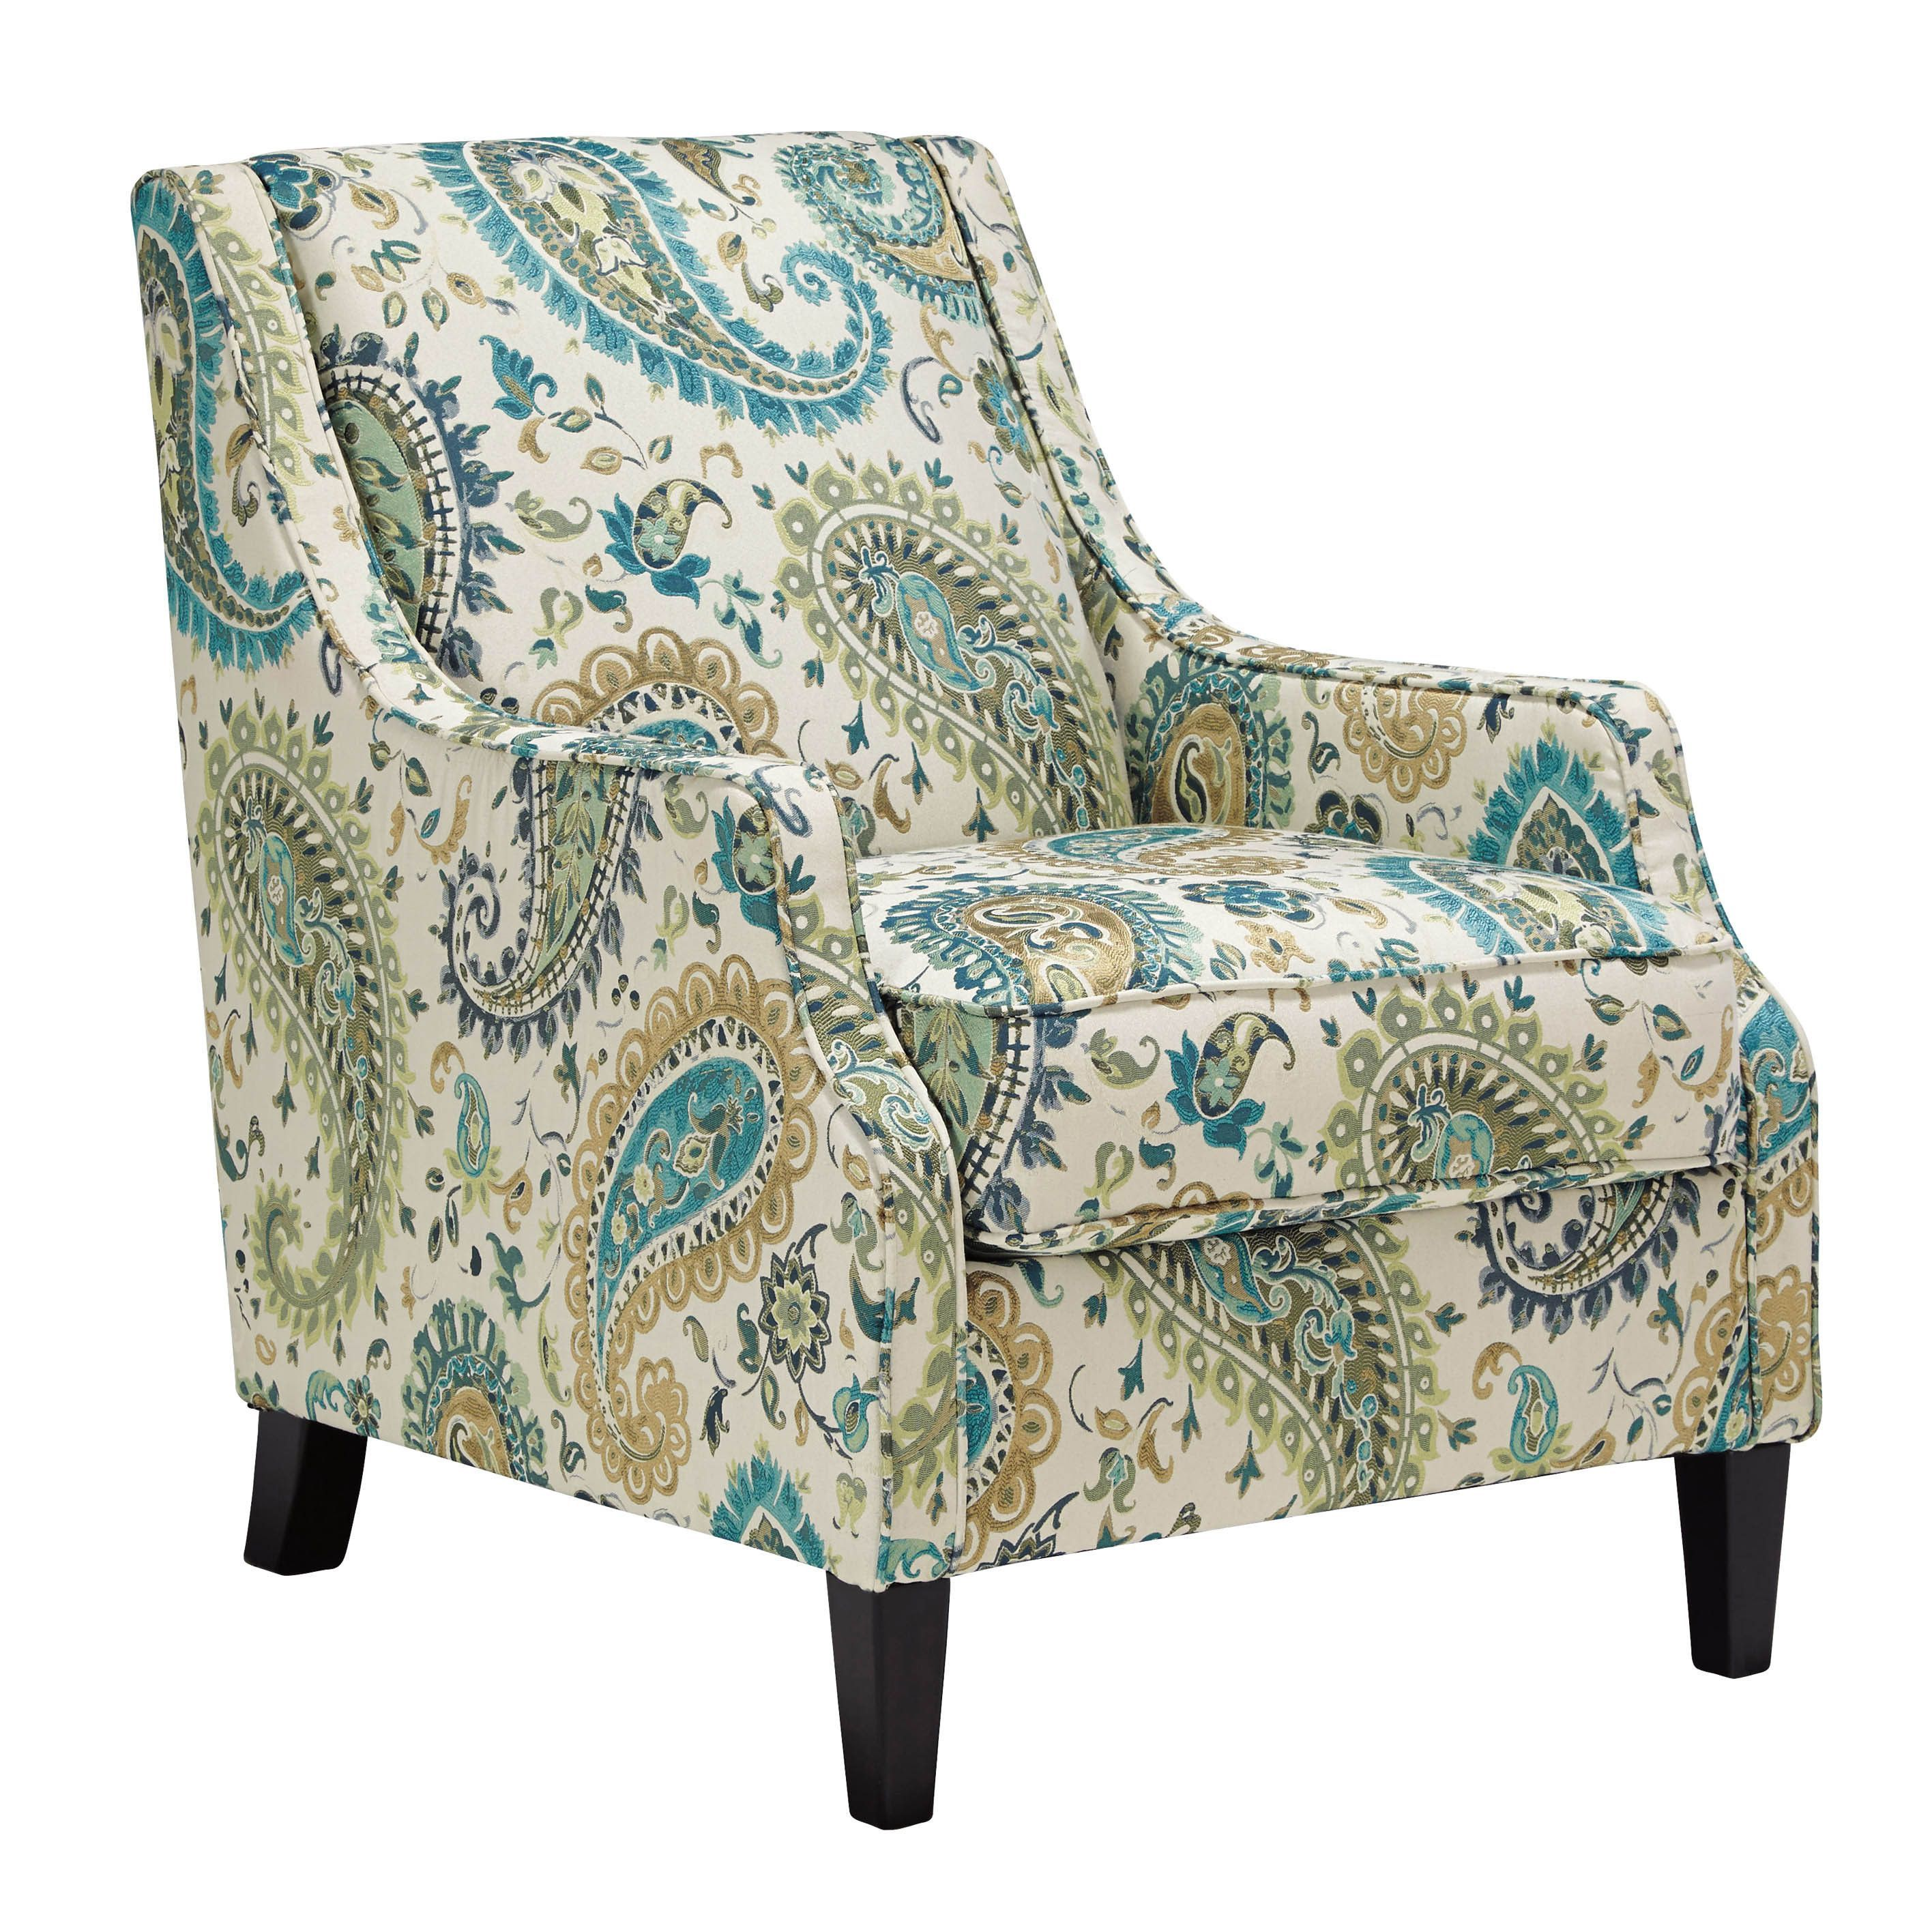 Signature Design By Ashley Lochian Jade Accent Chair (Chair), Green  (Polyester)